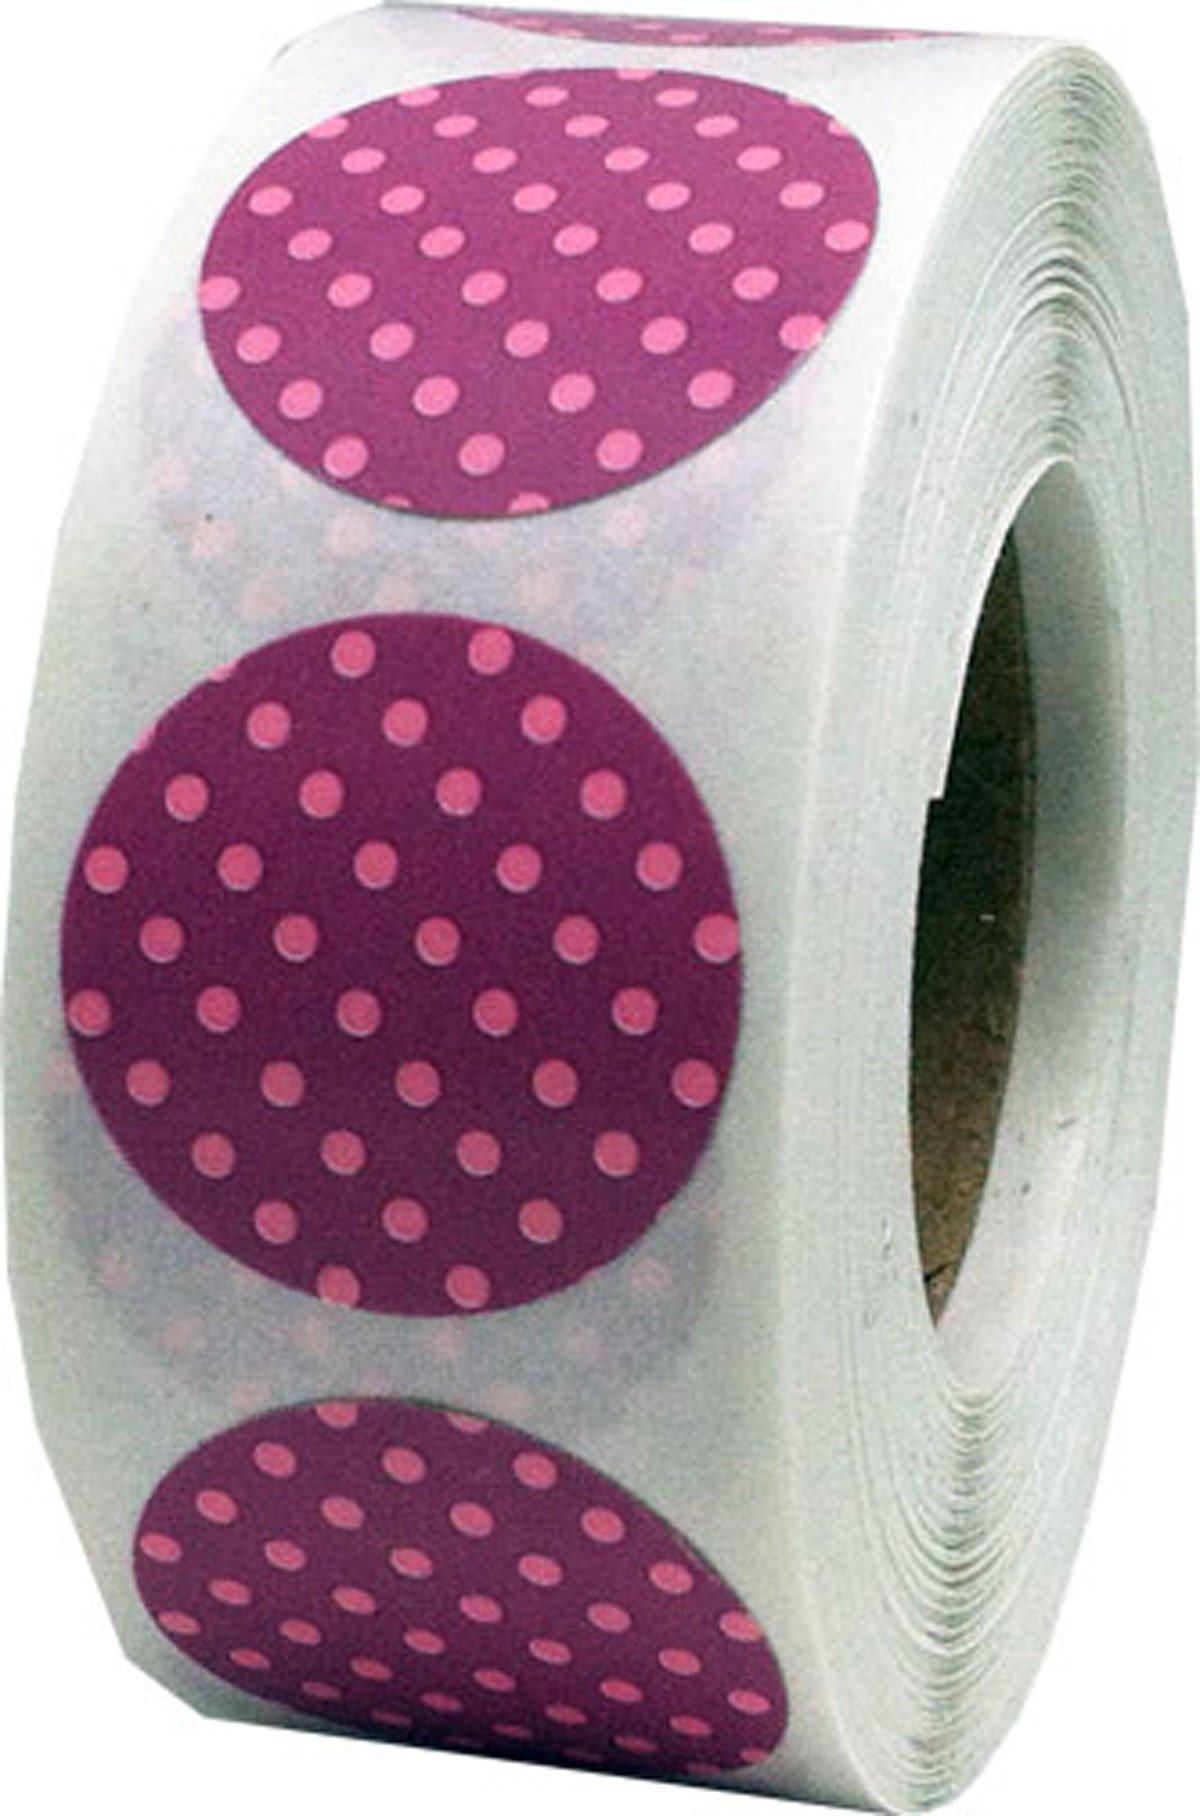 Dusty Rose with Pink Polka Dot Color Coding Labels for Organizing Inventory 0.75 Inch Round Circle Dots 500 Total Adhesive Stickers On A Roll